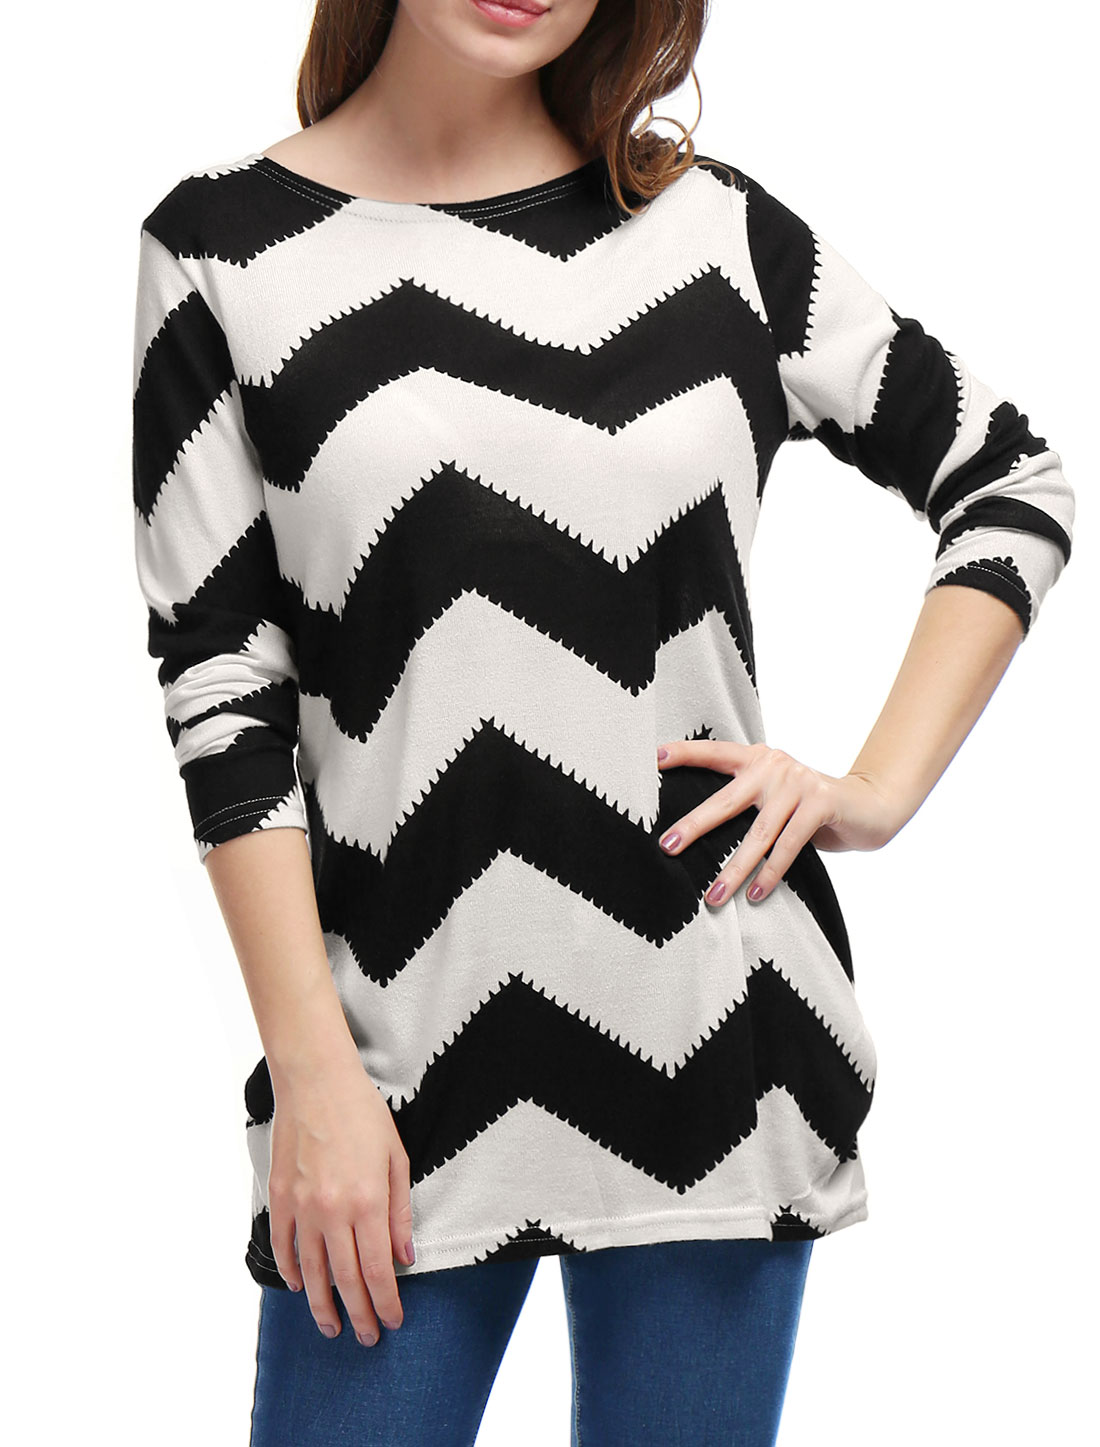 Woman Ruched Side Detail Black White Spring Tunic Knitted Top S